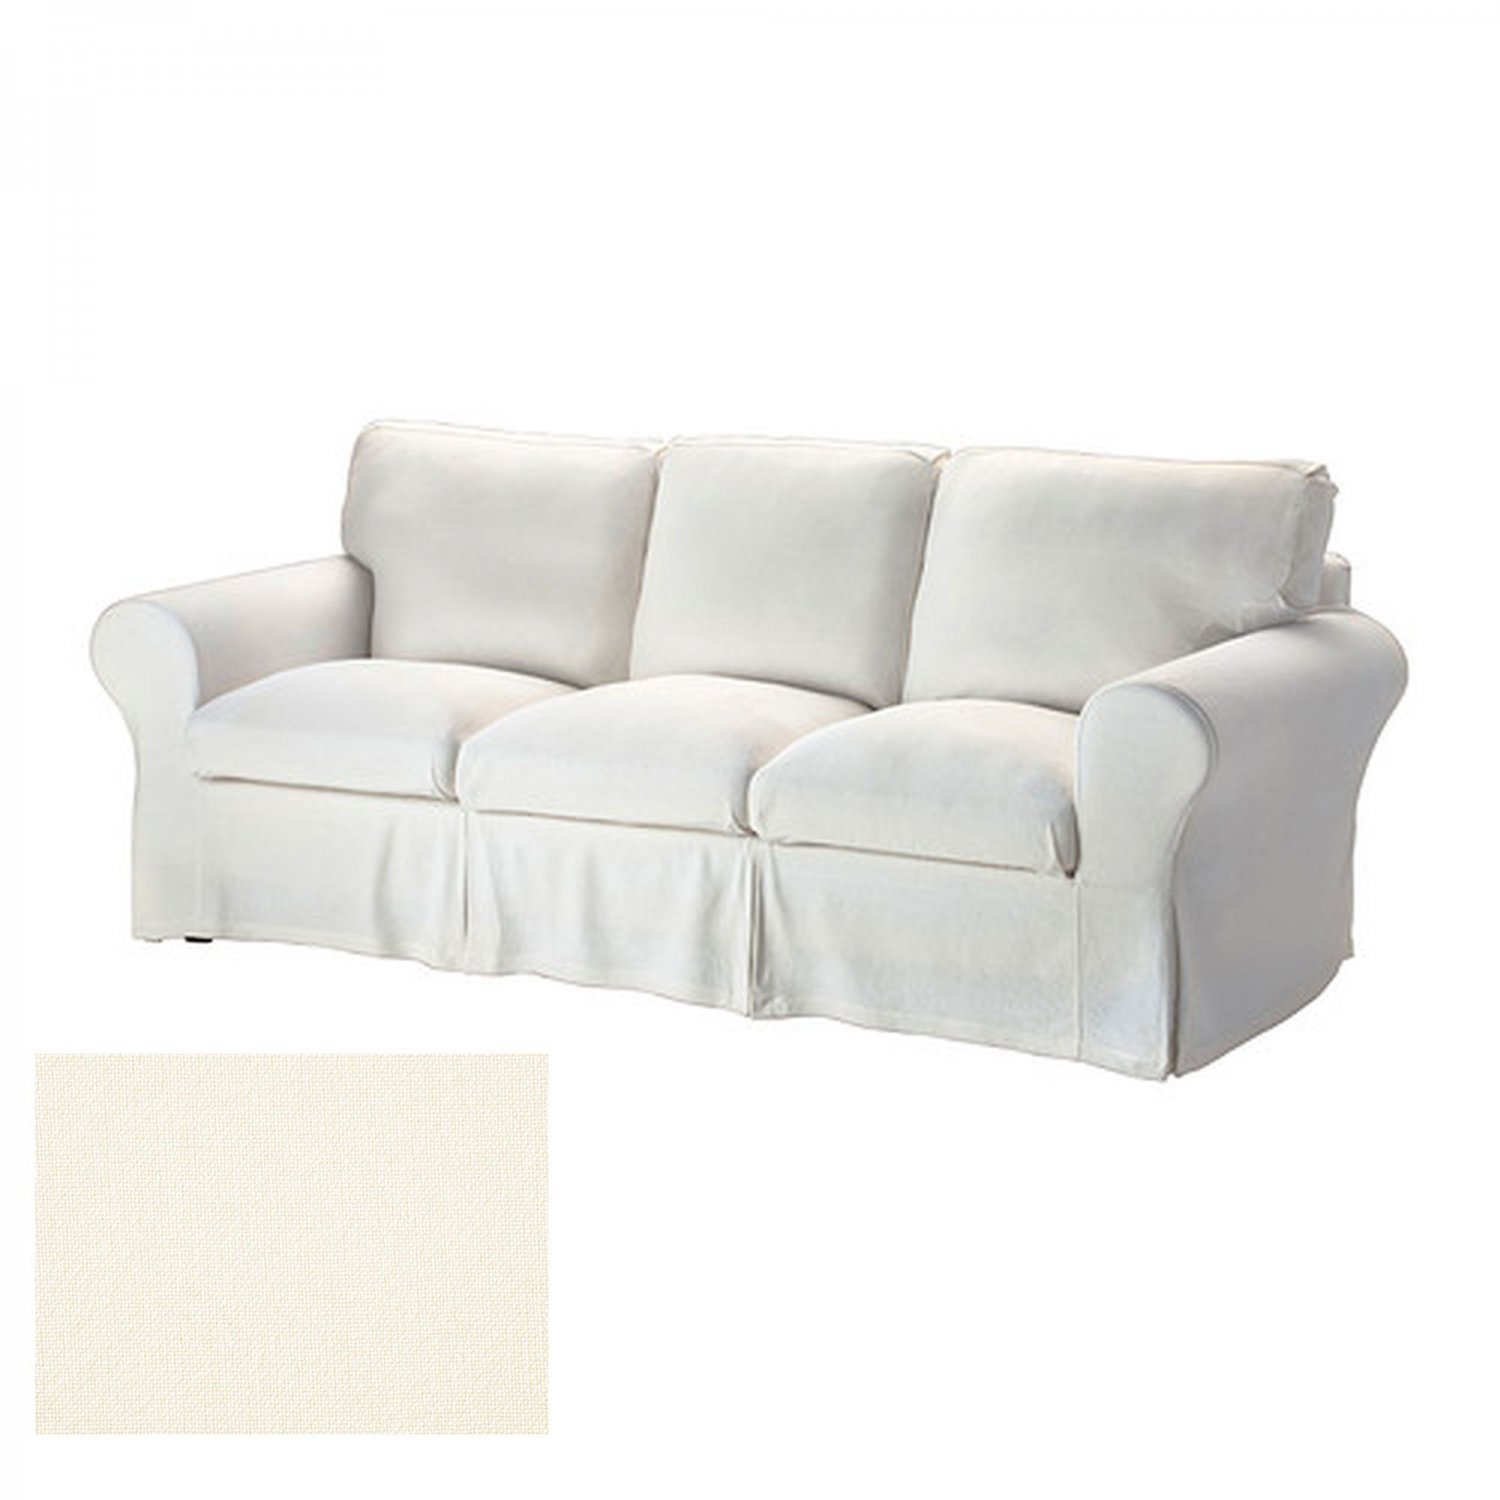 Ikea ektorp 3 seat sofa slipcover cover stenasa white off white sten sa linen blend White loveseat slipcovers